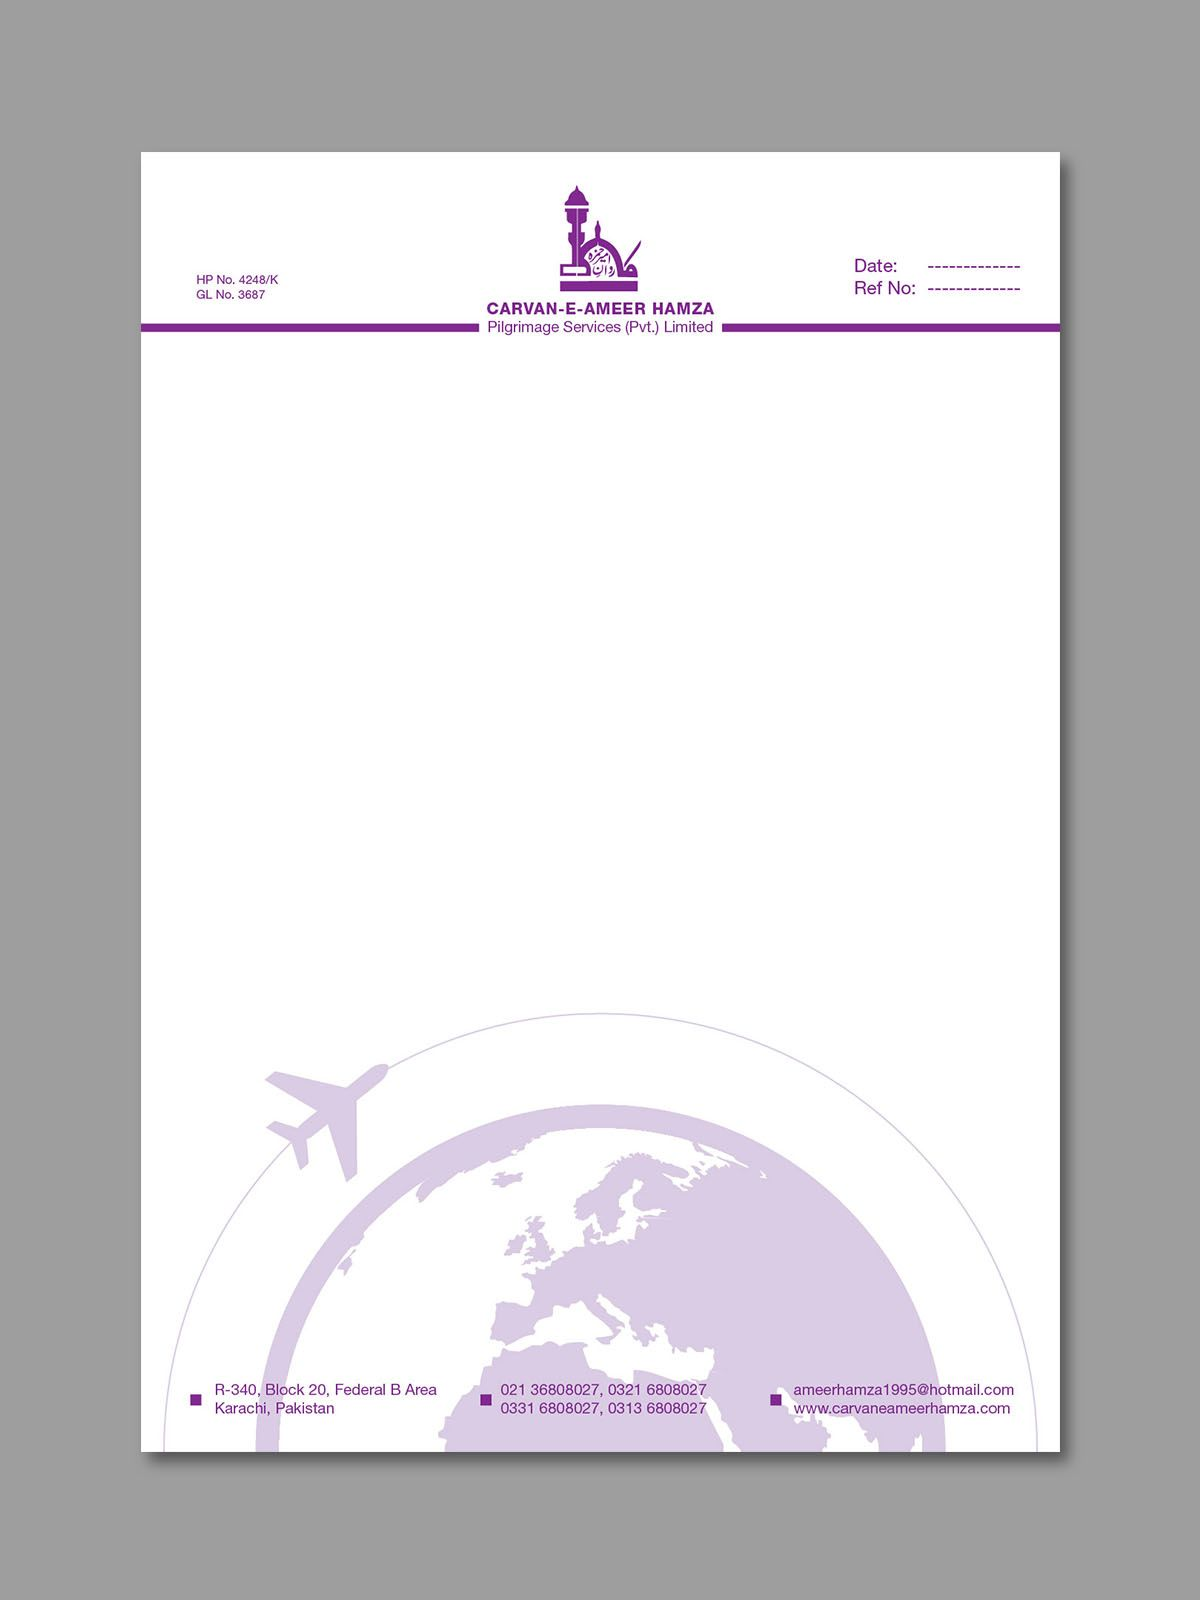 Purple A4 Letter Head Design for Travel Agency  Design Concepts  Letterhead design Letterhead